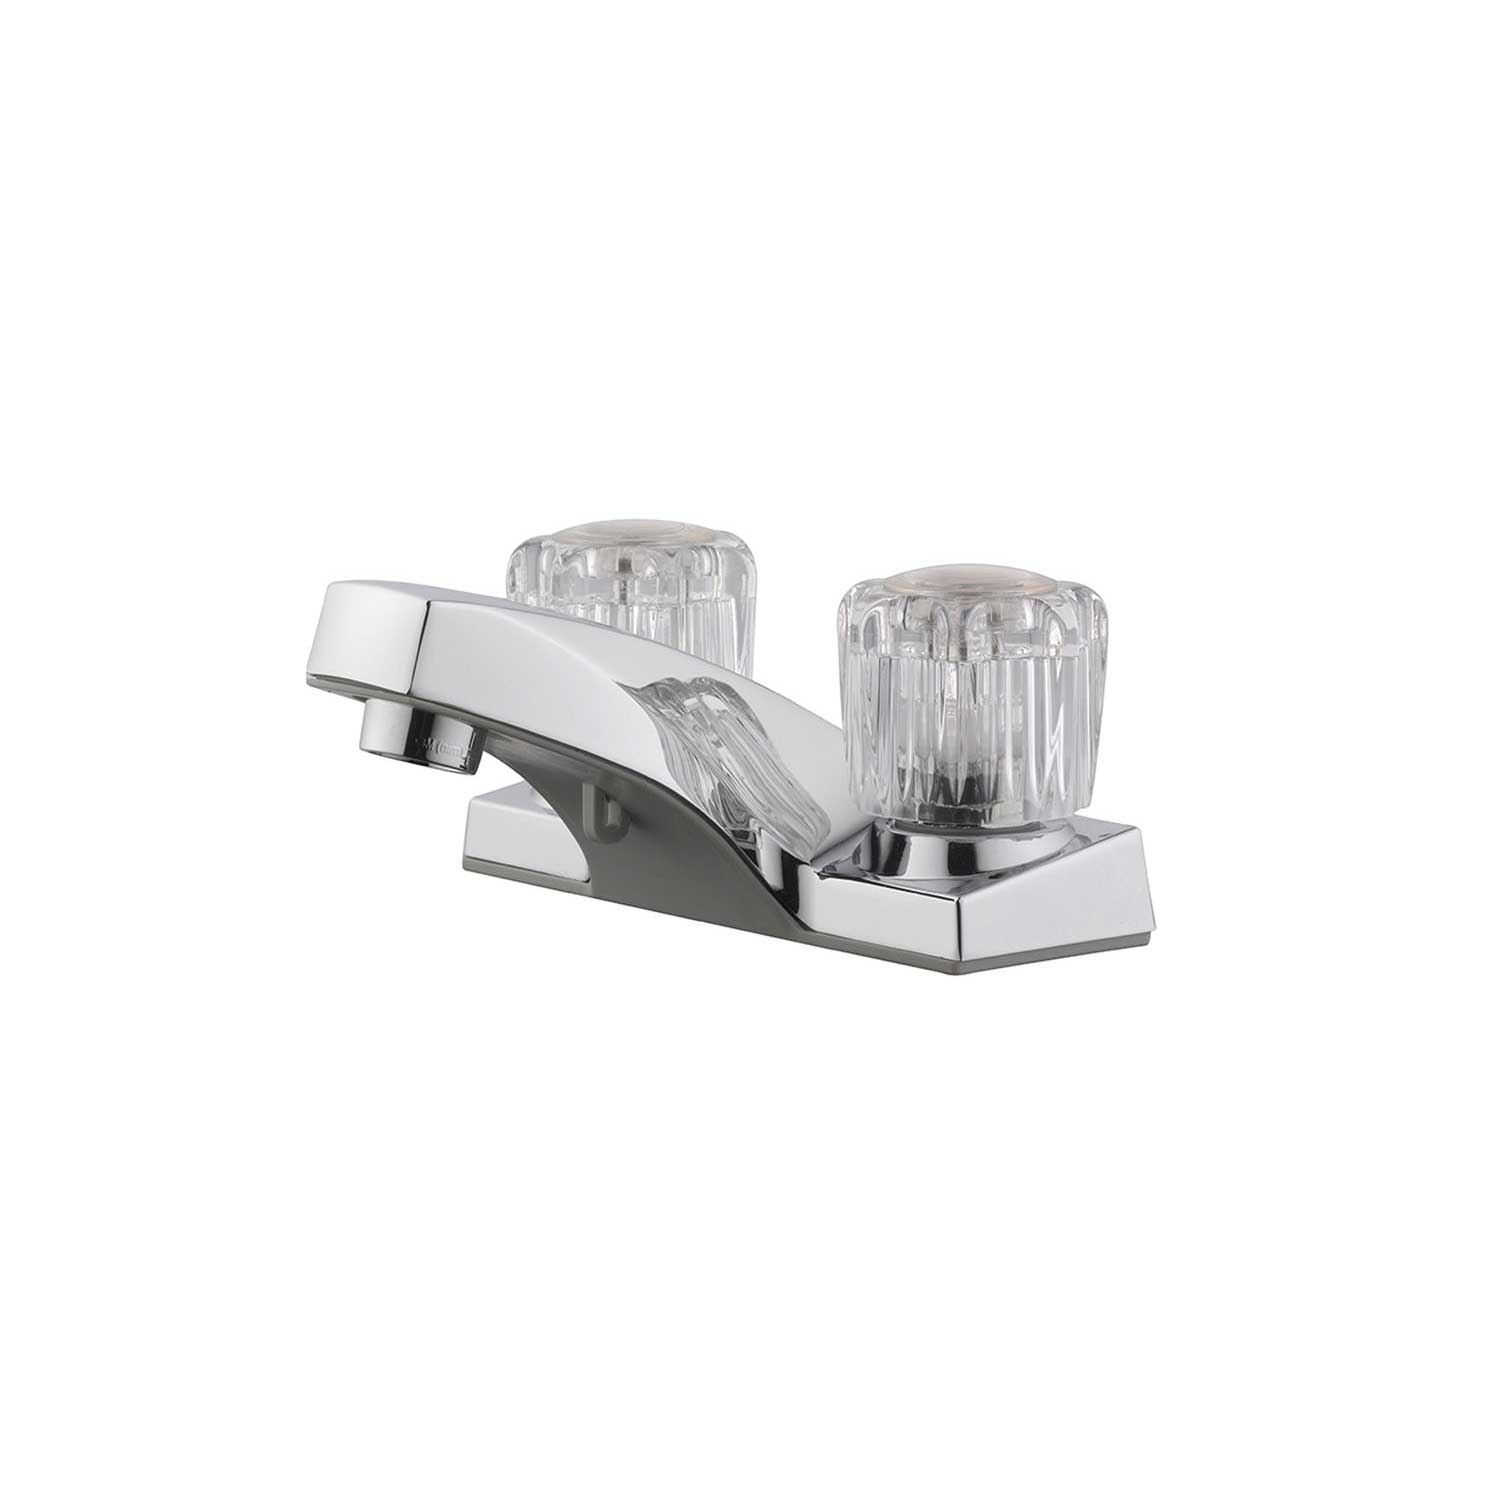 Design House Millbridge 4 in. Dual Handle Lavatory Faucet No Pop up Assembly, Polished Chrome - 545954